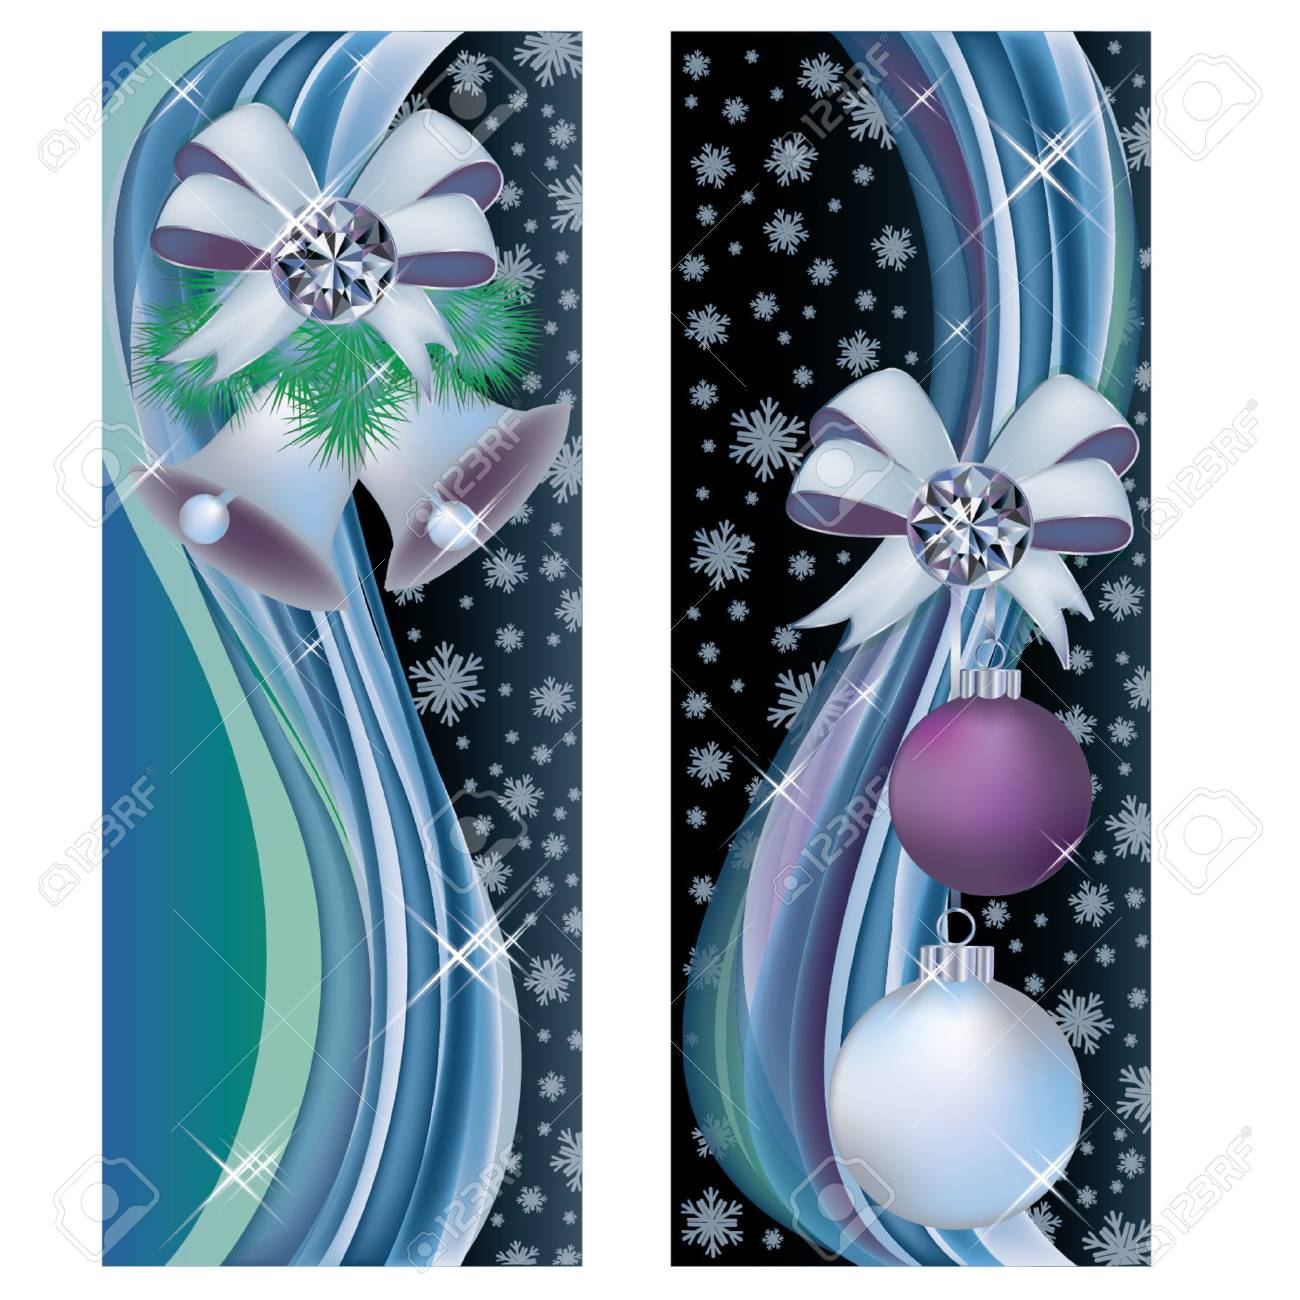 Two christmas greeting banners, vector illustration Stock Vector - 23084645